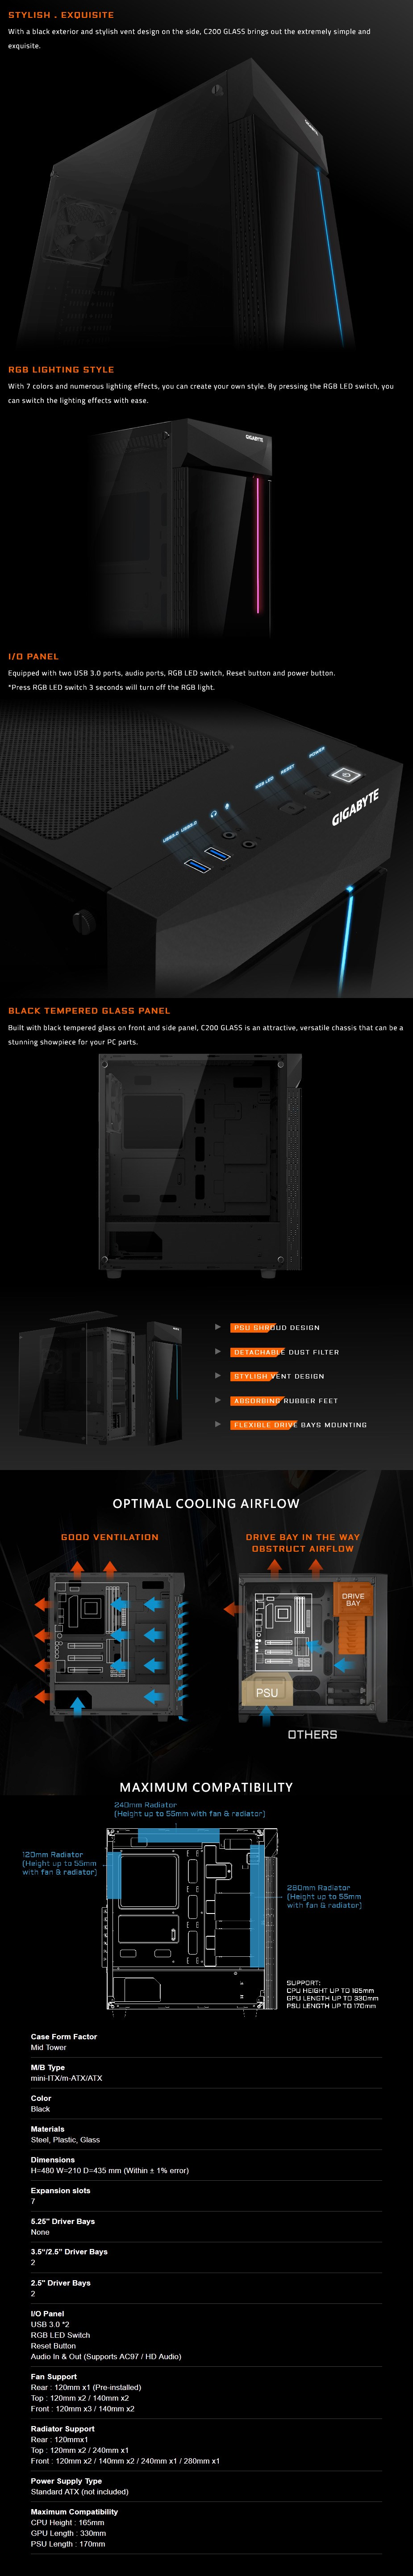 Gigabyte C200 RGB Tempered Glass Mid-Tower ATX Case - Overview 1